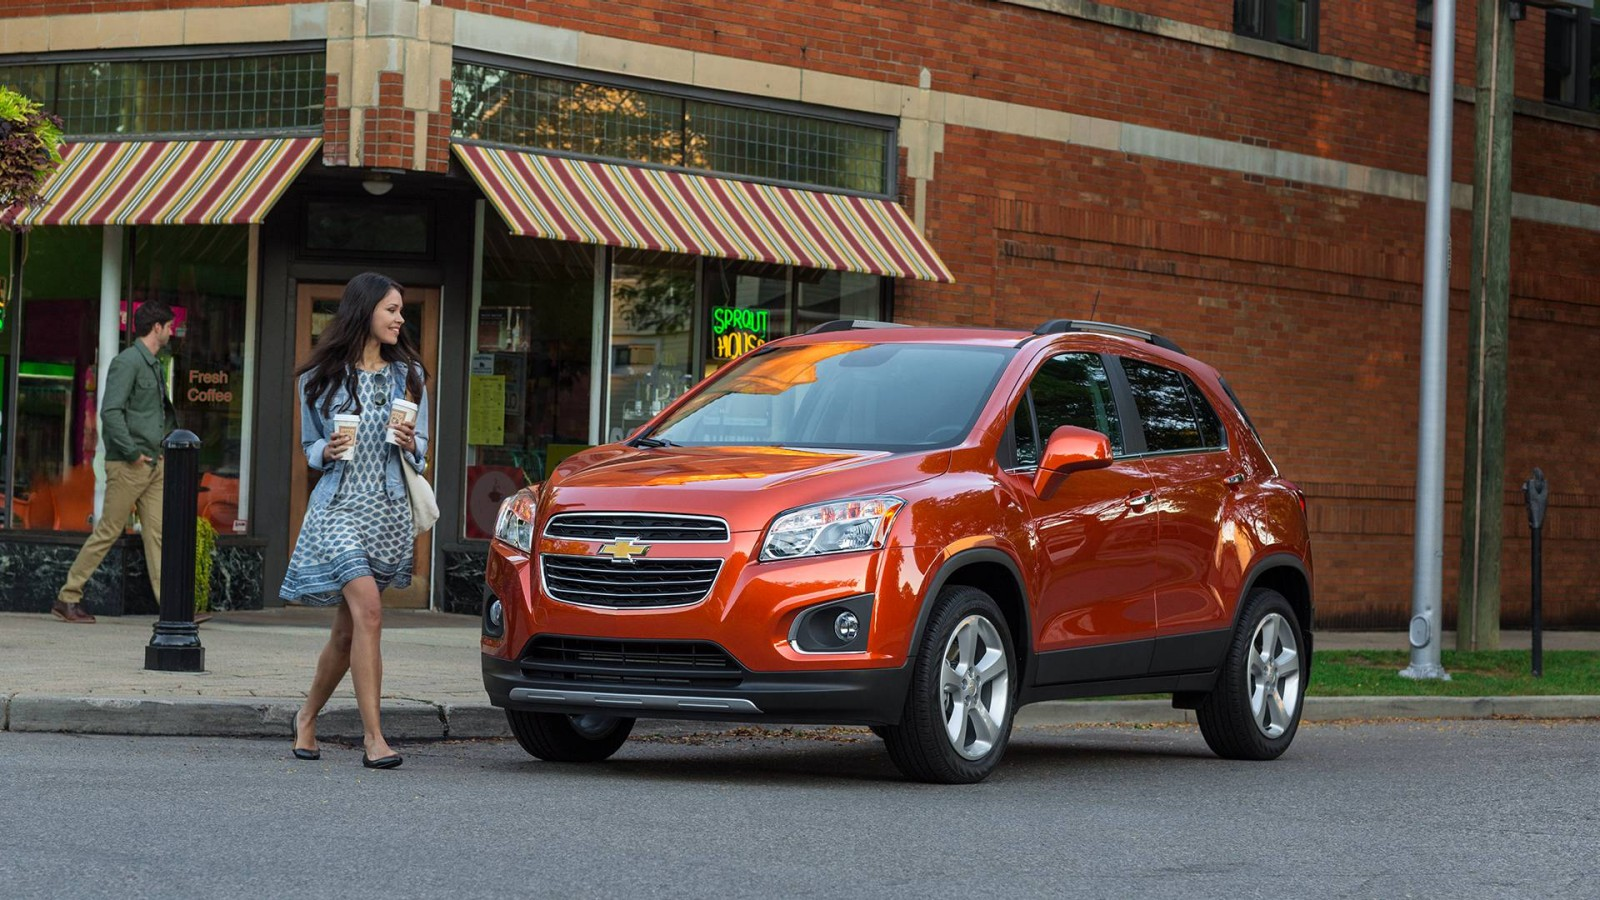 The 2016 Chevy Trax